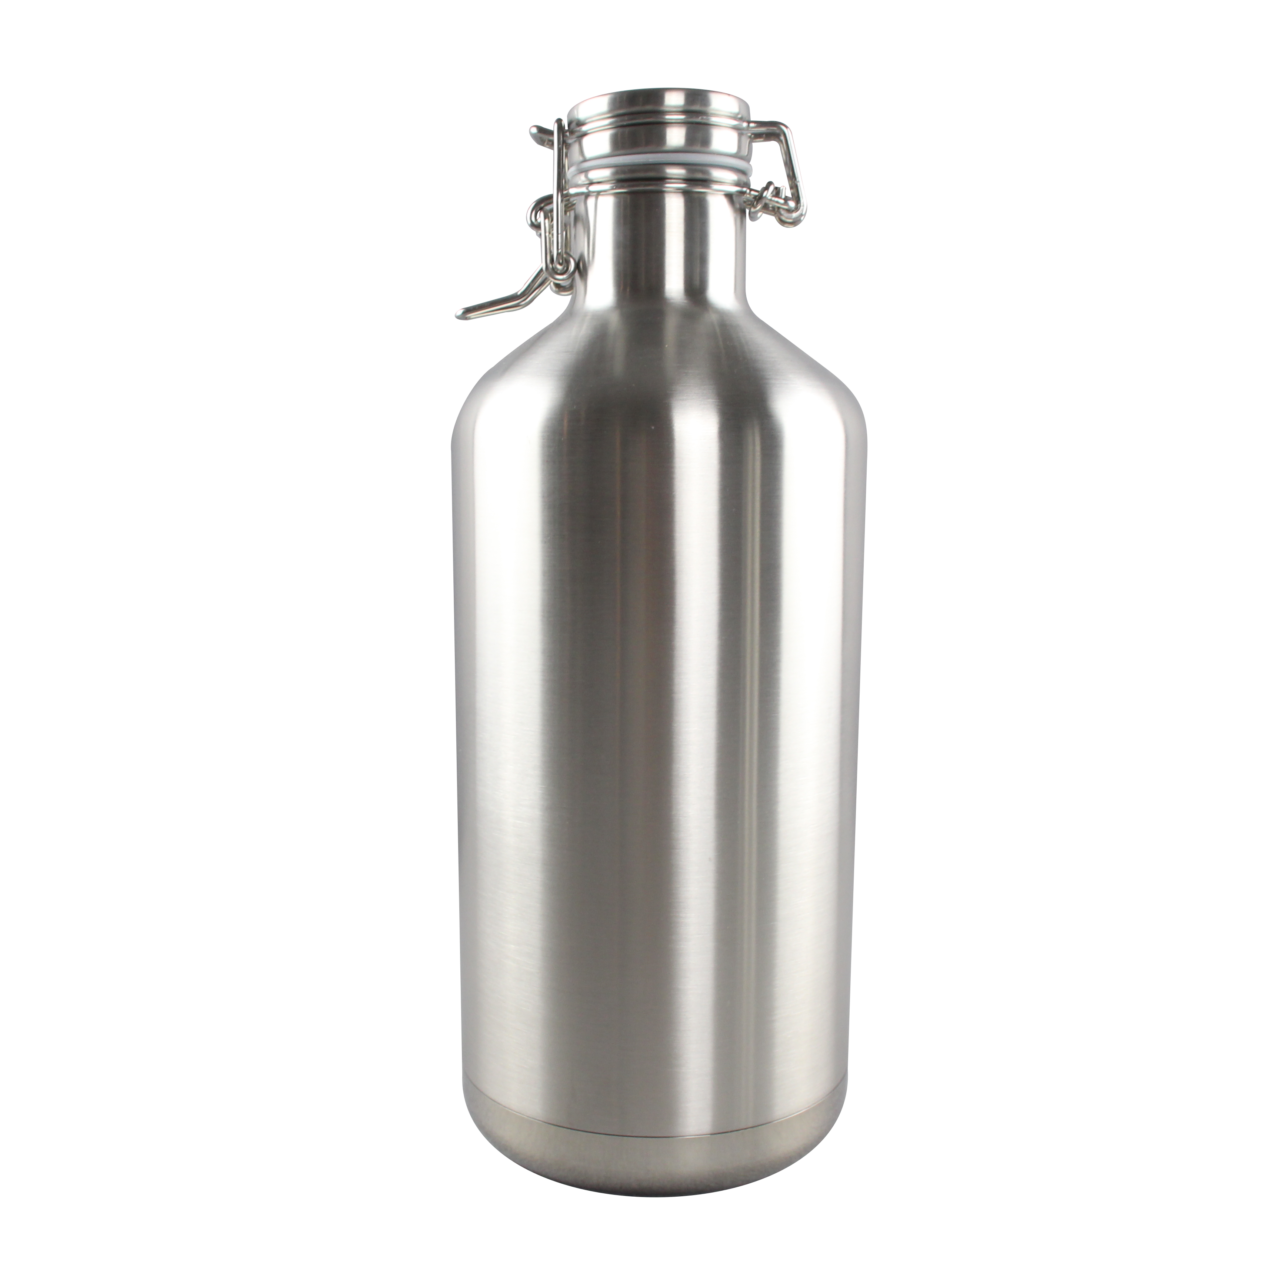 64 Oz Stainless Steel Growler Bottle With Side Lid K